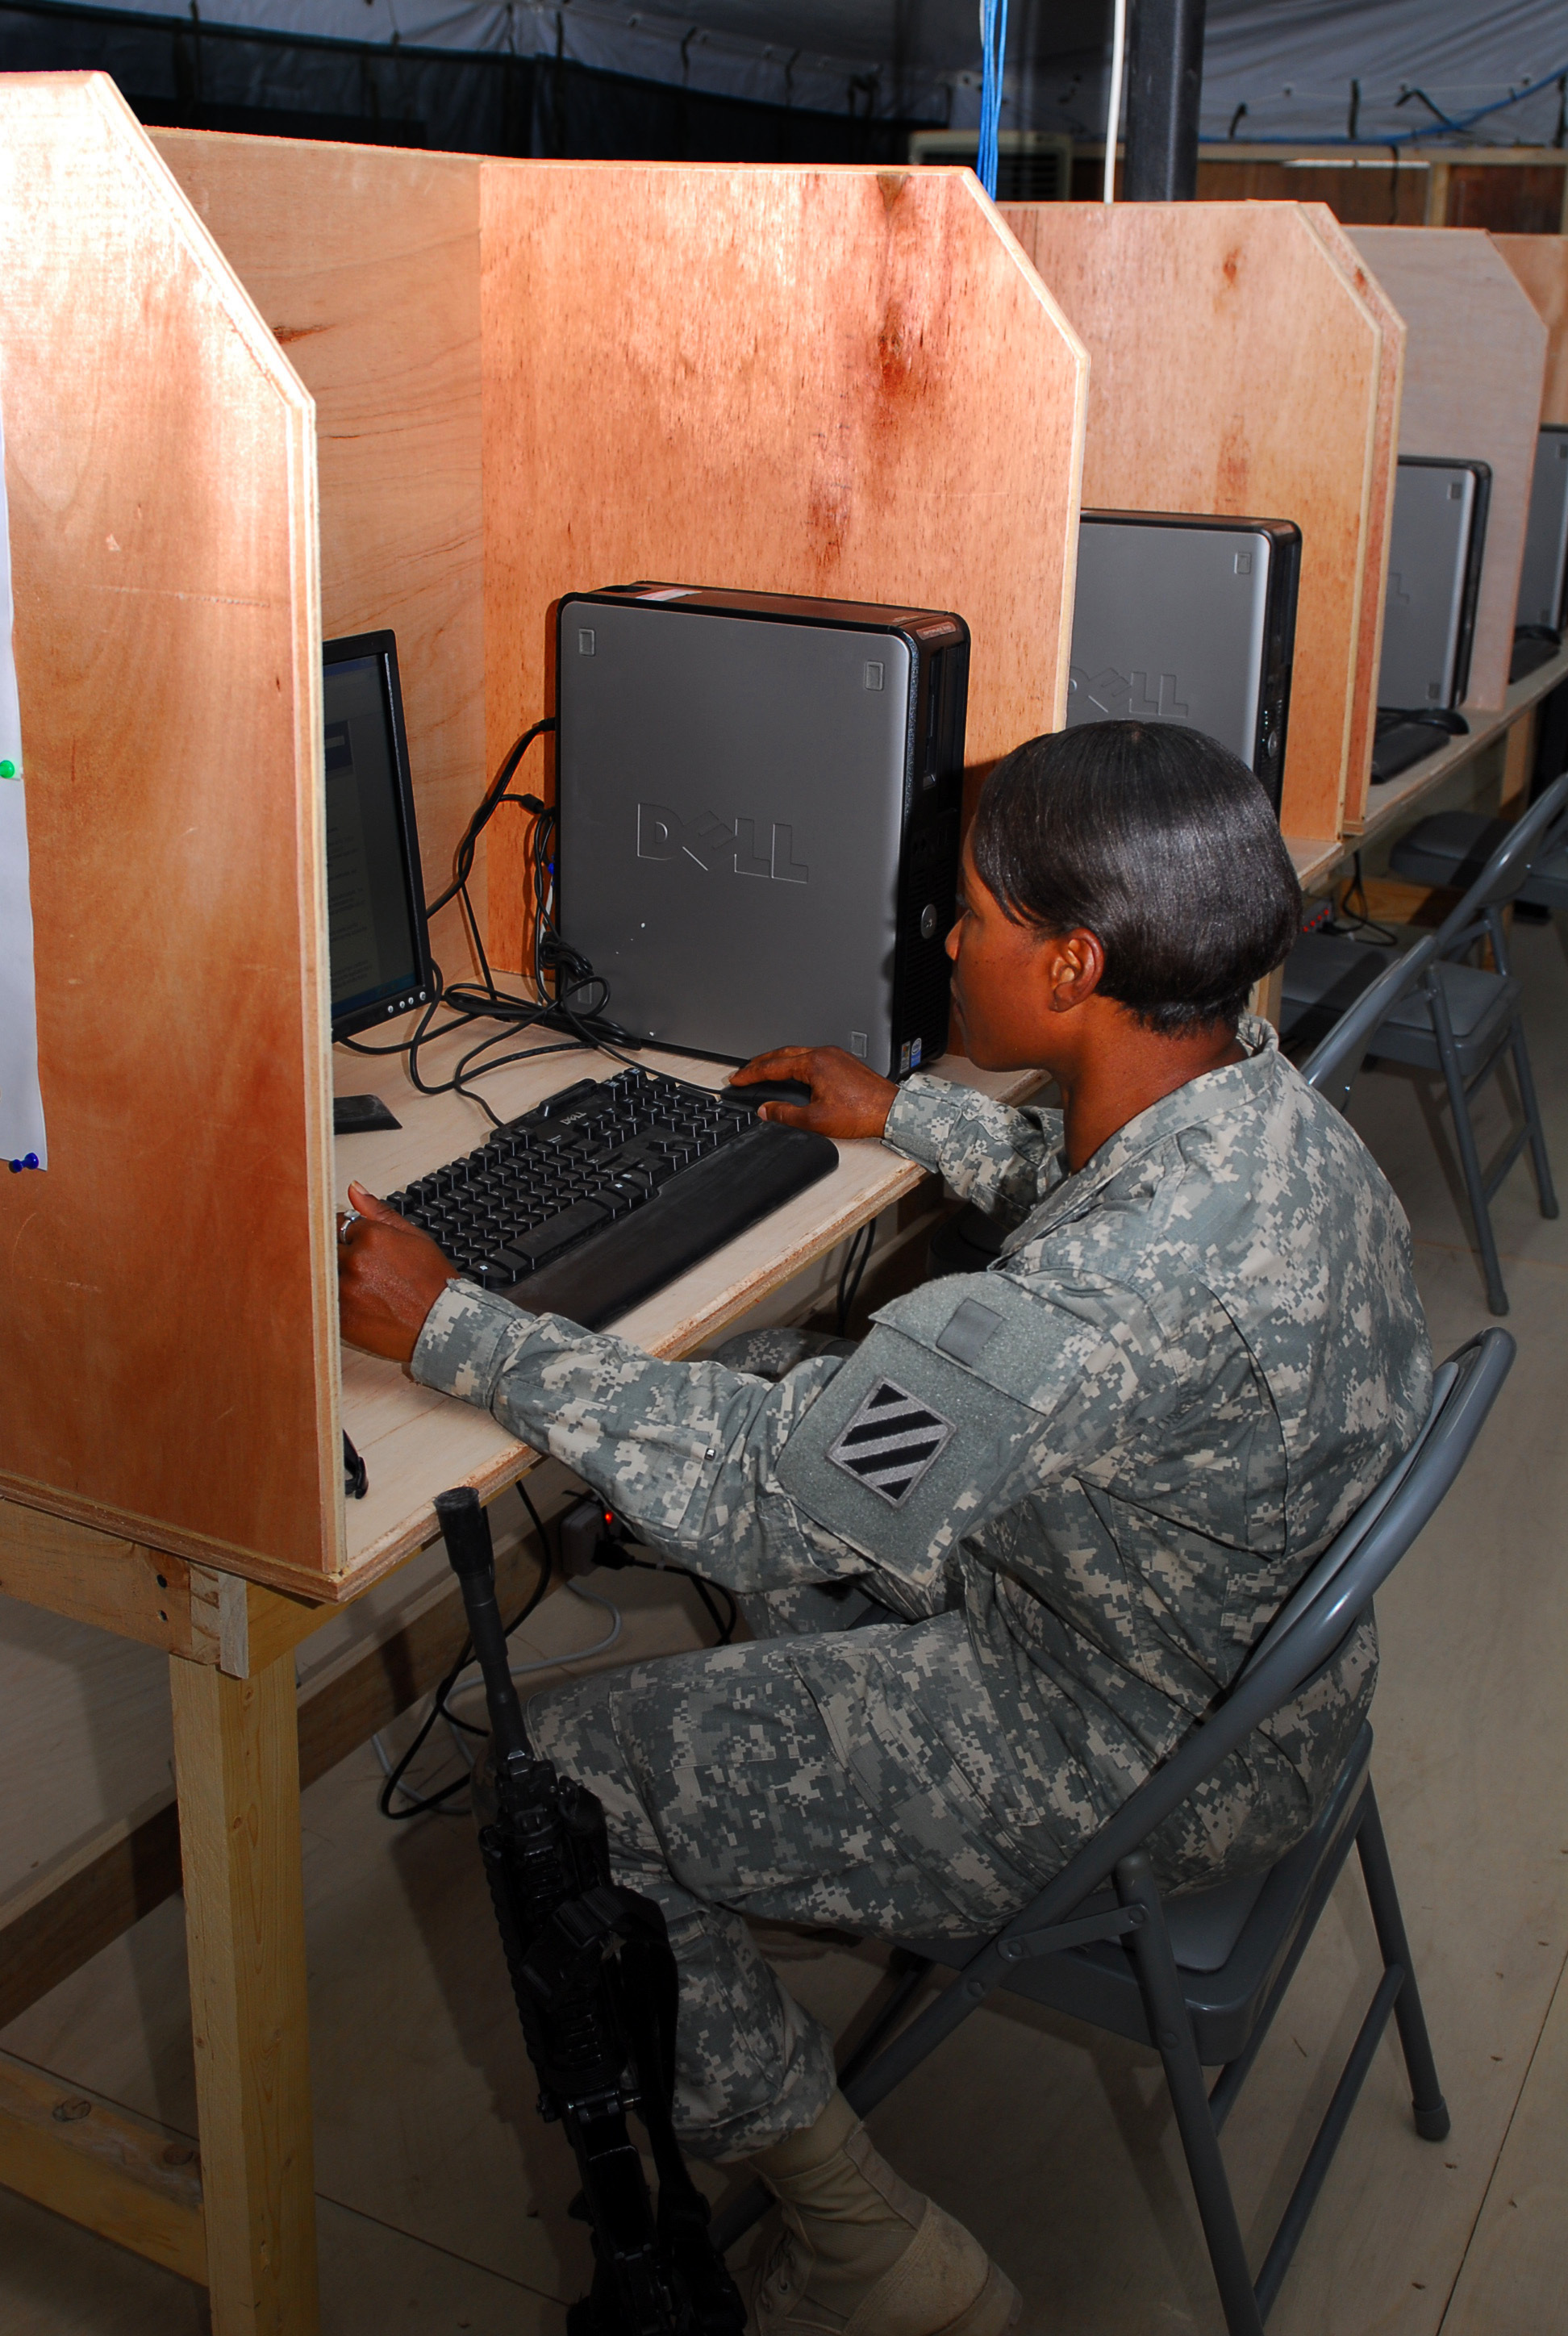 Soldier using a computer at a distance learning center